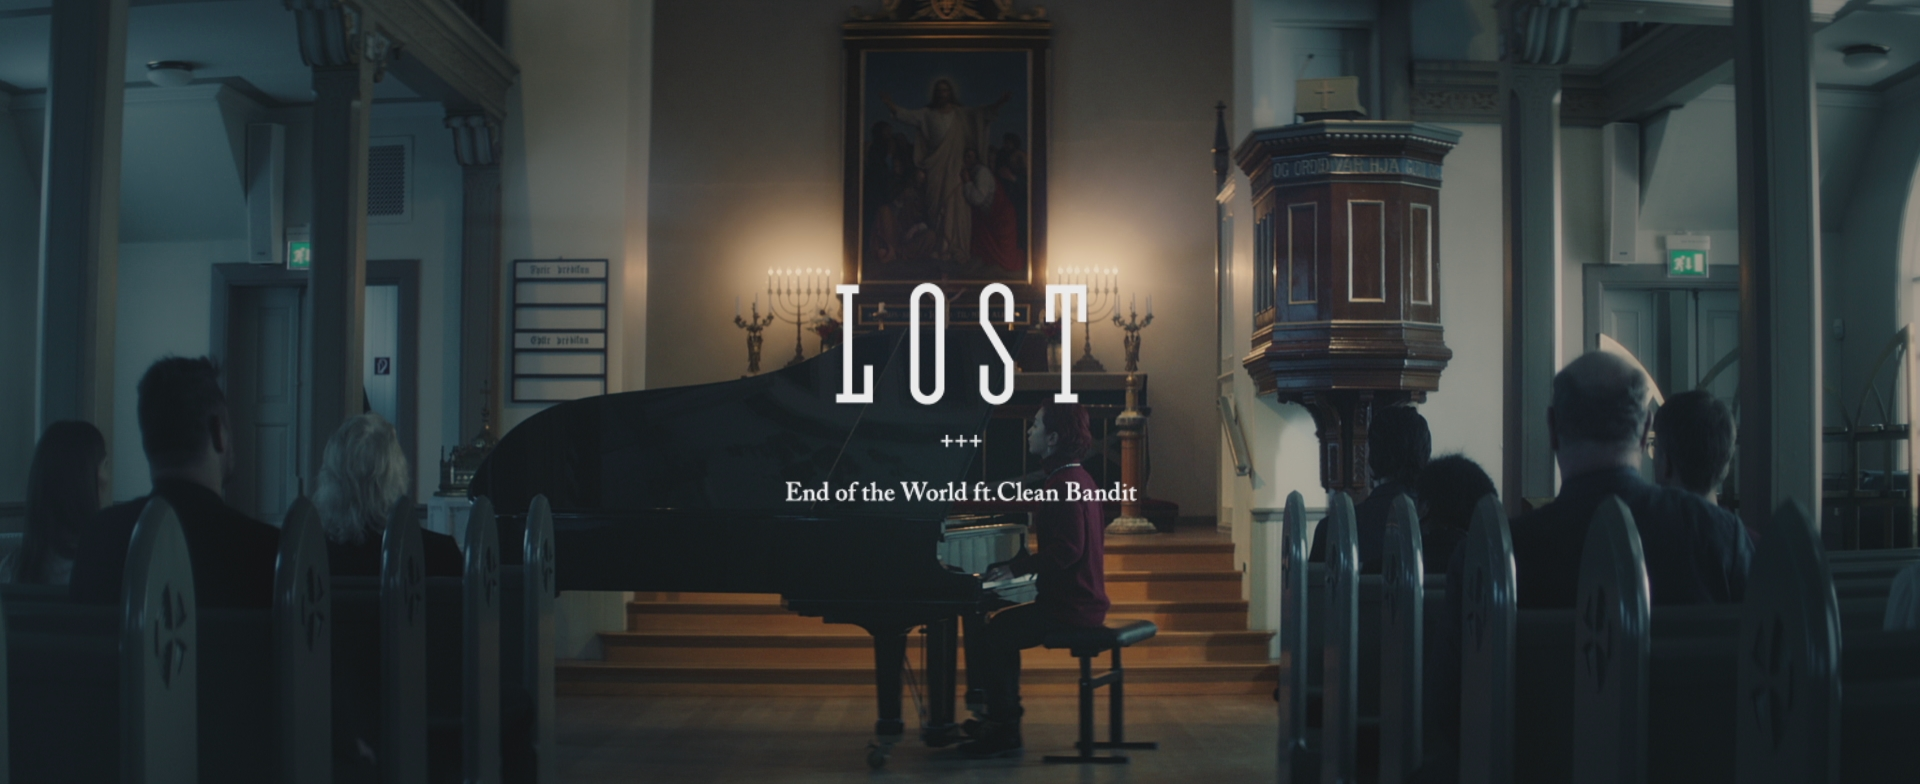 Lost (Official Video) - End of the World, Clean Bandit